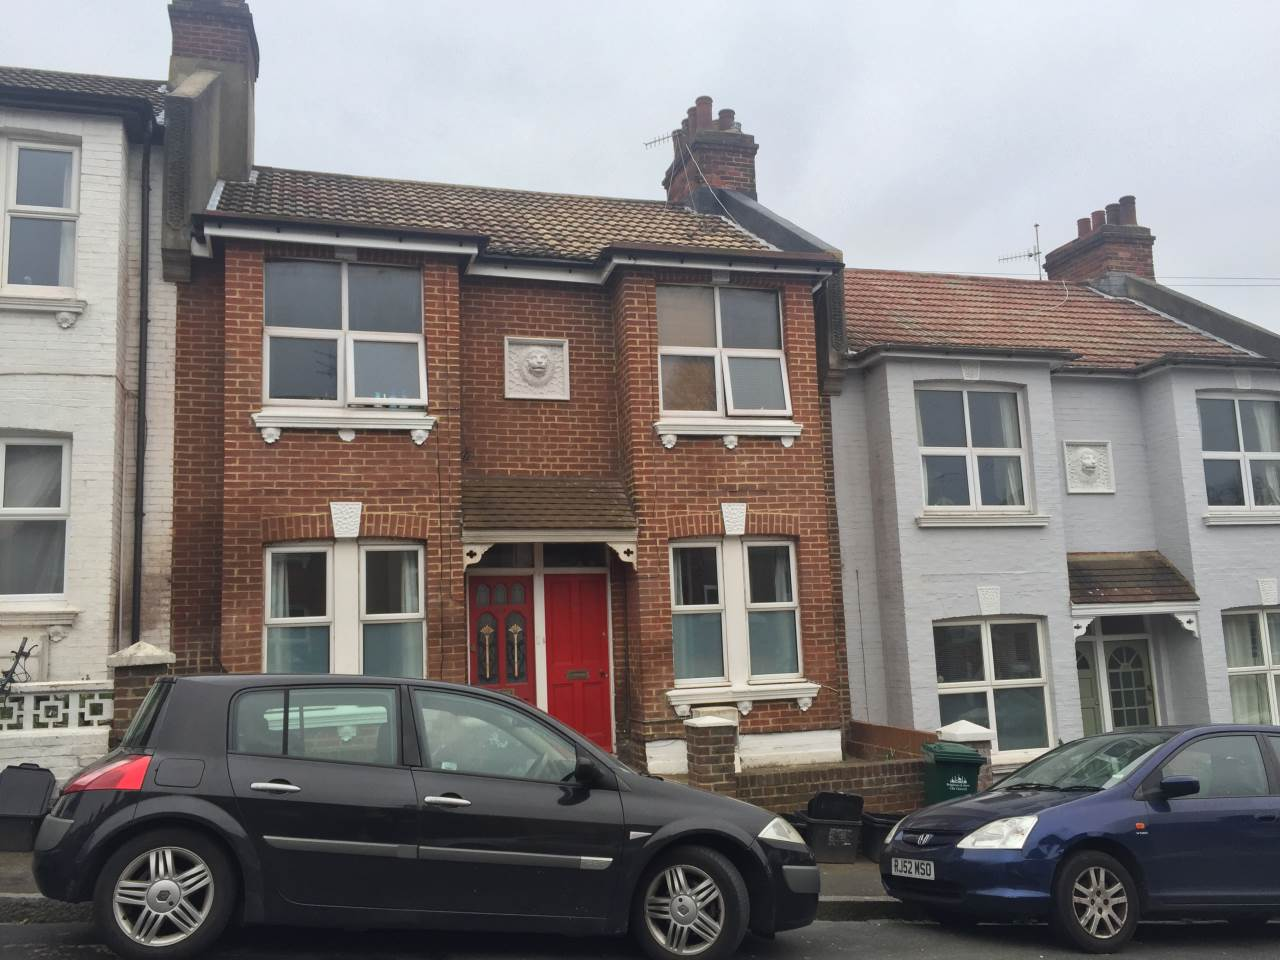 3 bed flat to rent in Shanklin Road, Brighton, BN2